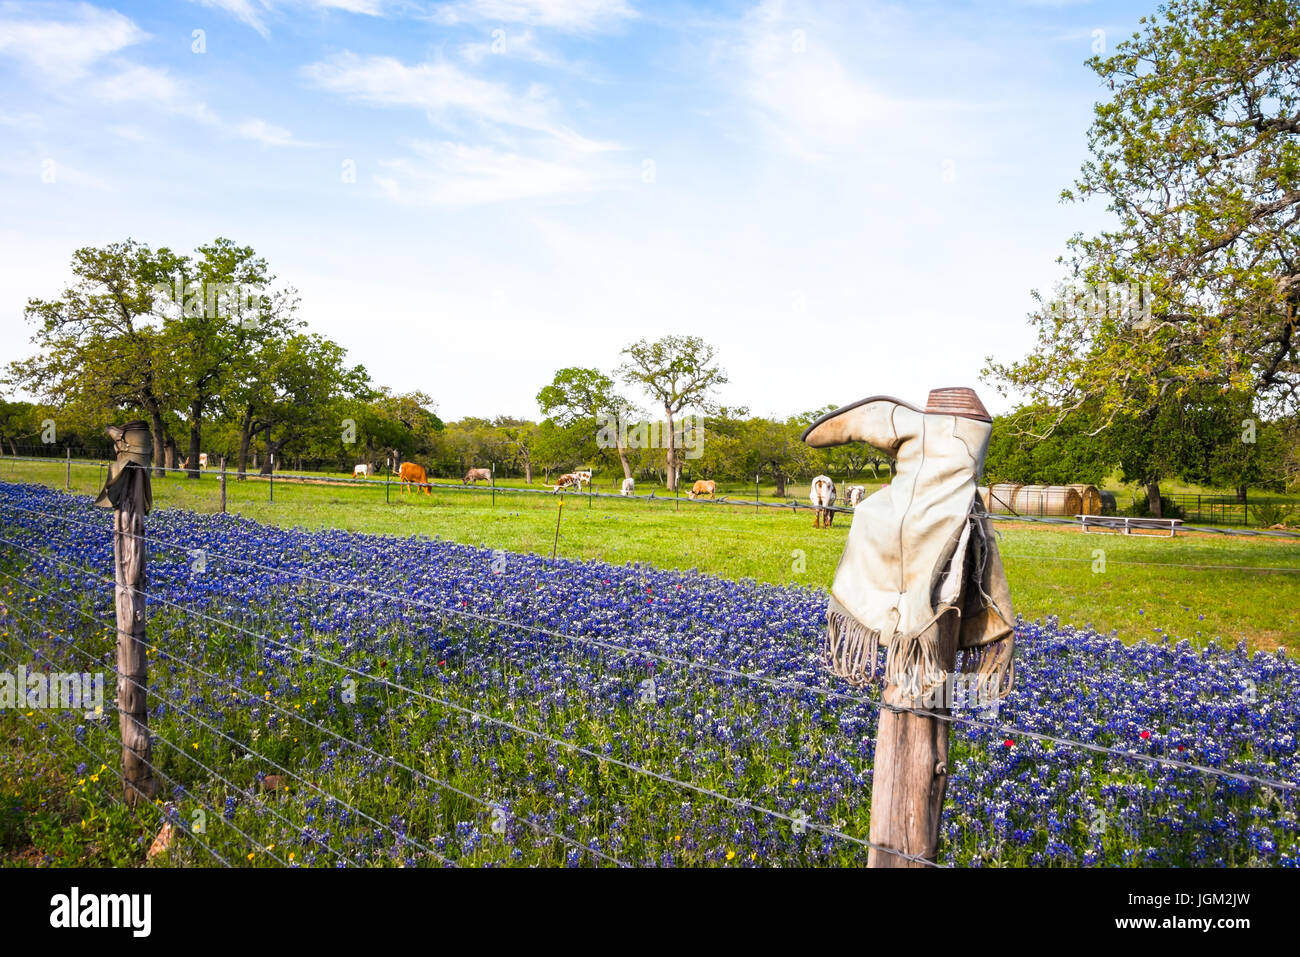 09a91785274d Broken Boots on Fence Posts on Texas Hill Country Ranch with Bluebonnets  and Longhorn Cattle